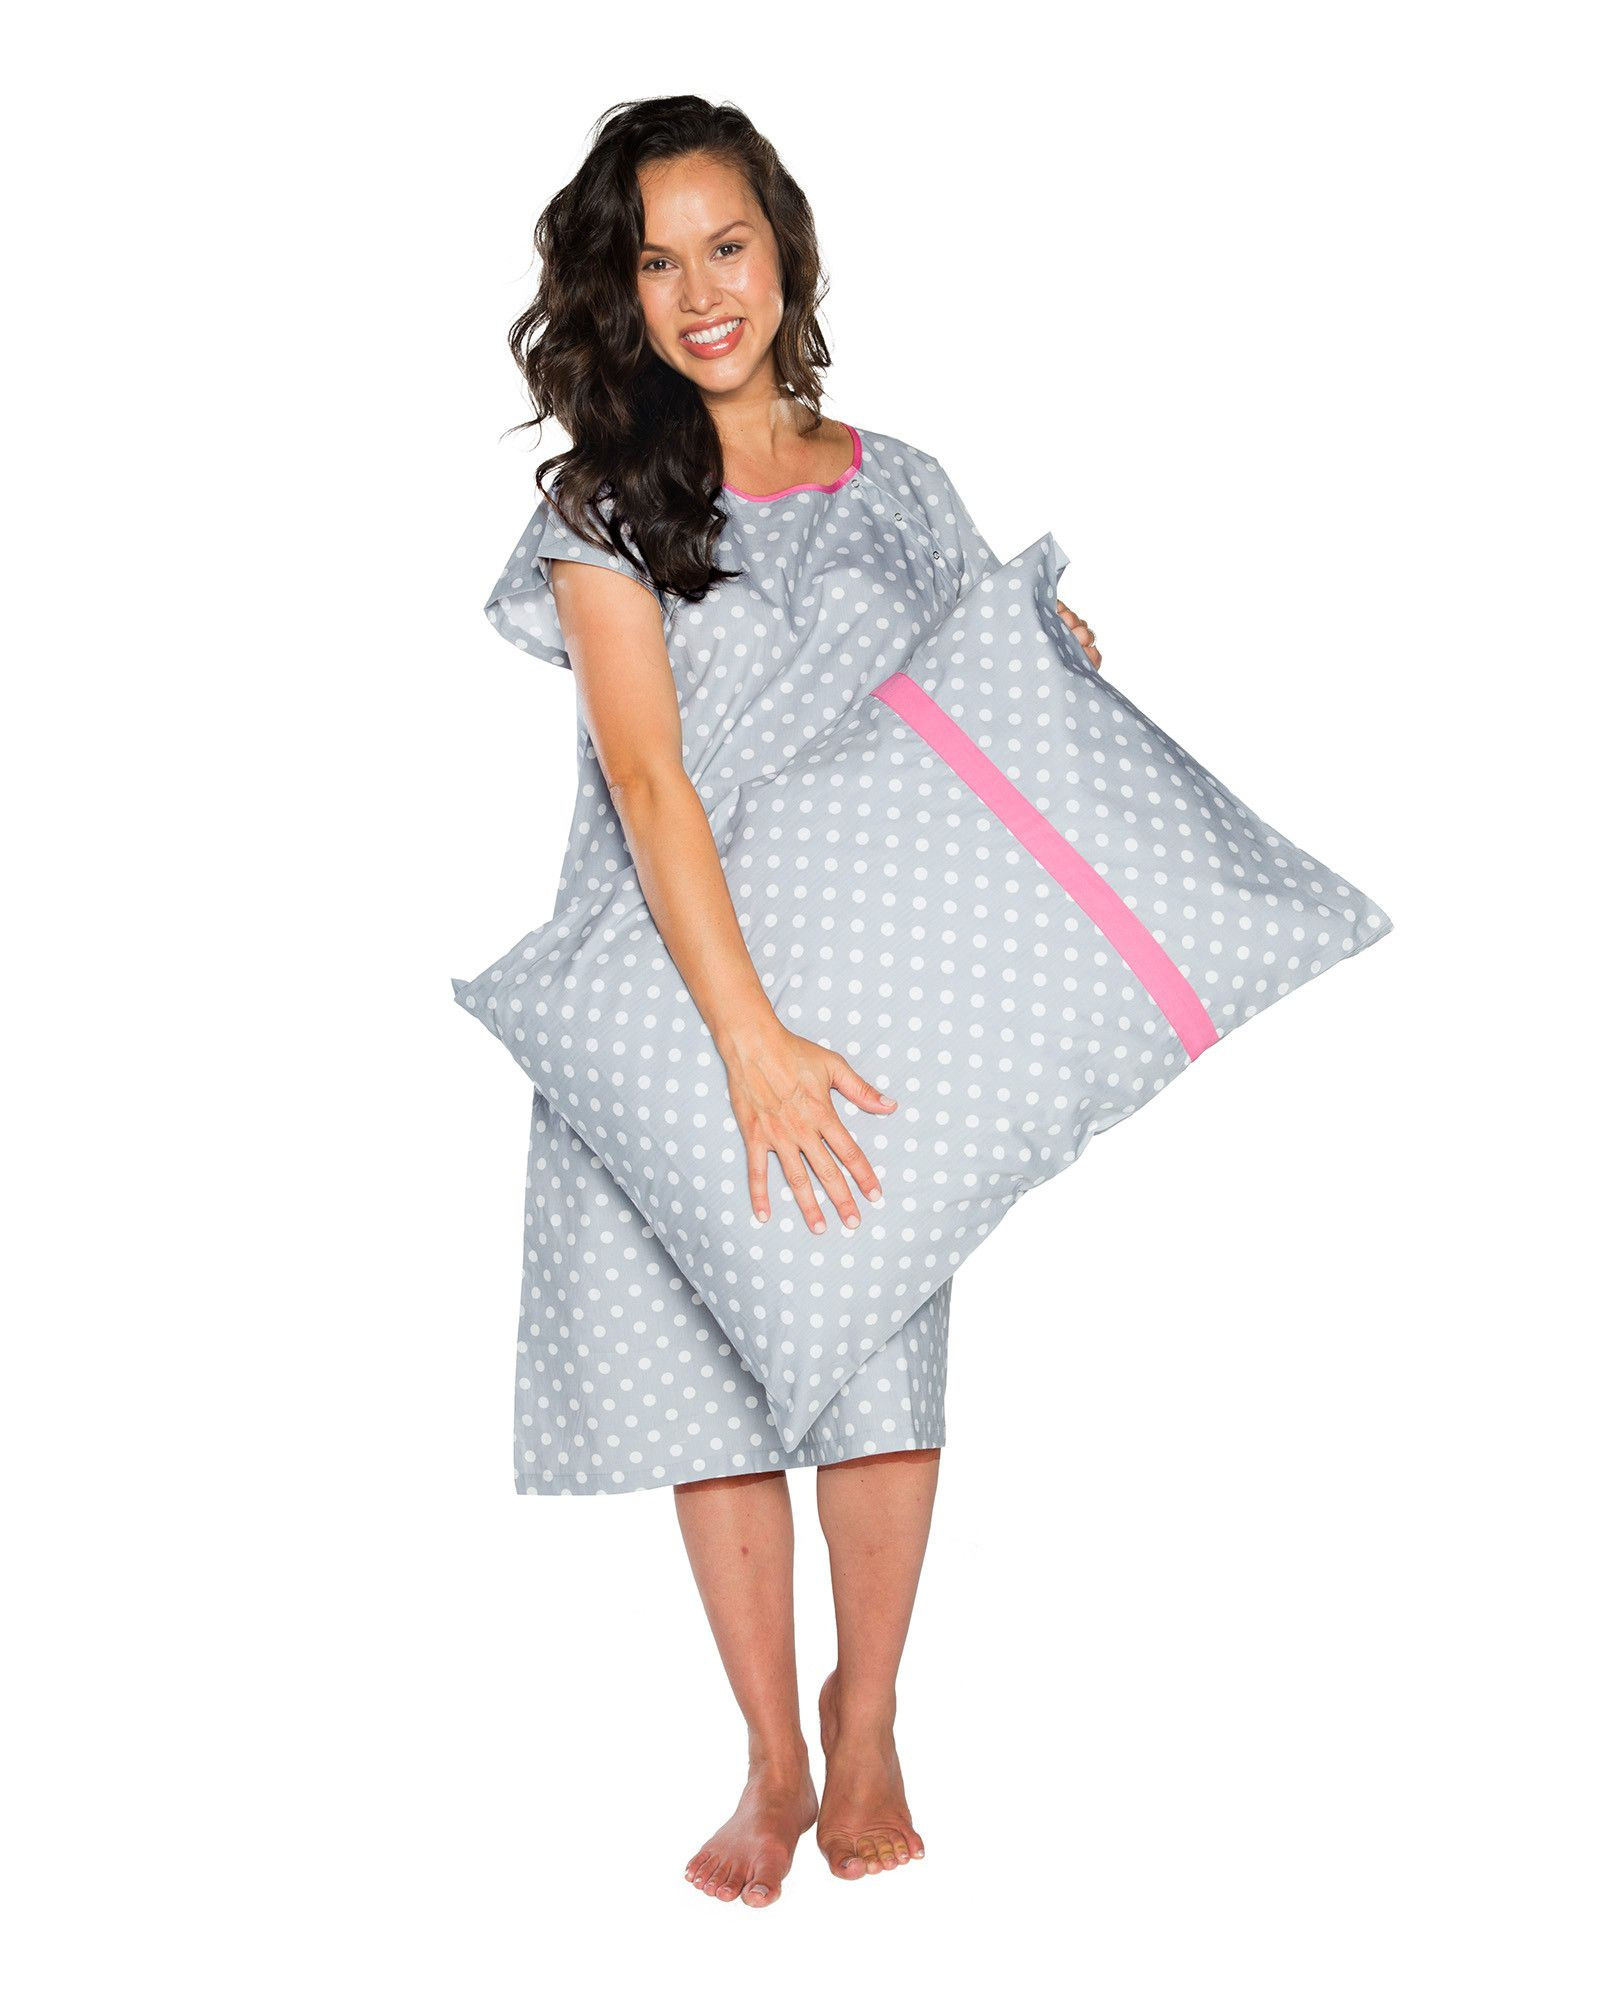 1a097c585c Lisa Gownie Delivery Labor Hospital Gown   Pillowcase SetHere is the  perfect alternative to that oh so many used tatty old hospital gown.